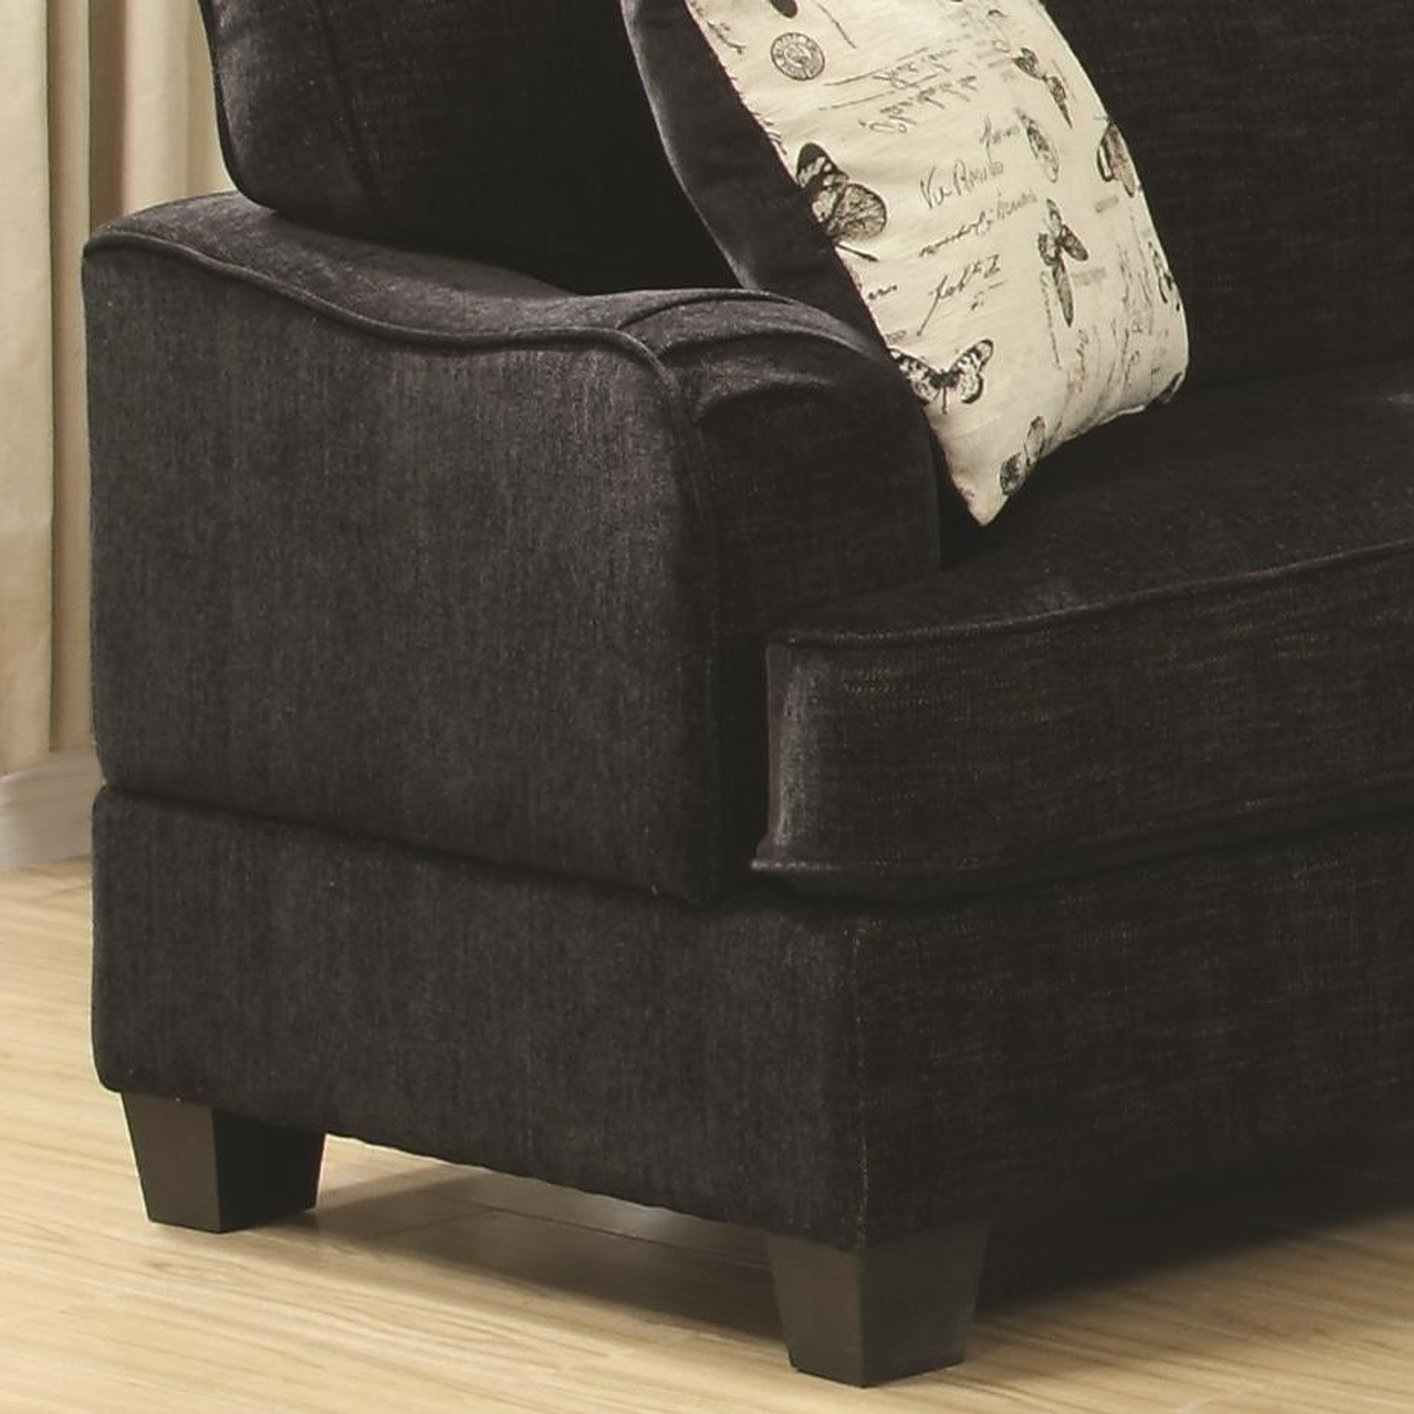 black fabric sofa chair snuggle yasmine steal a furniture outlet